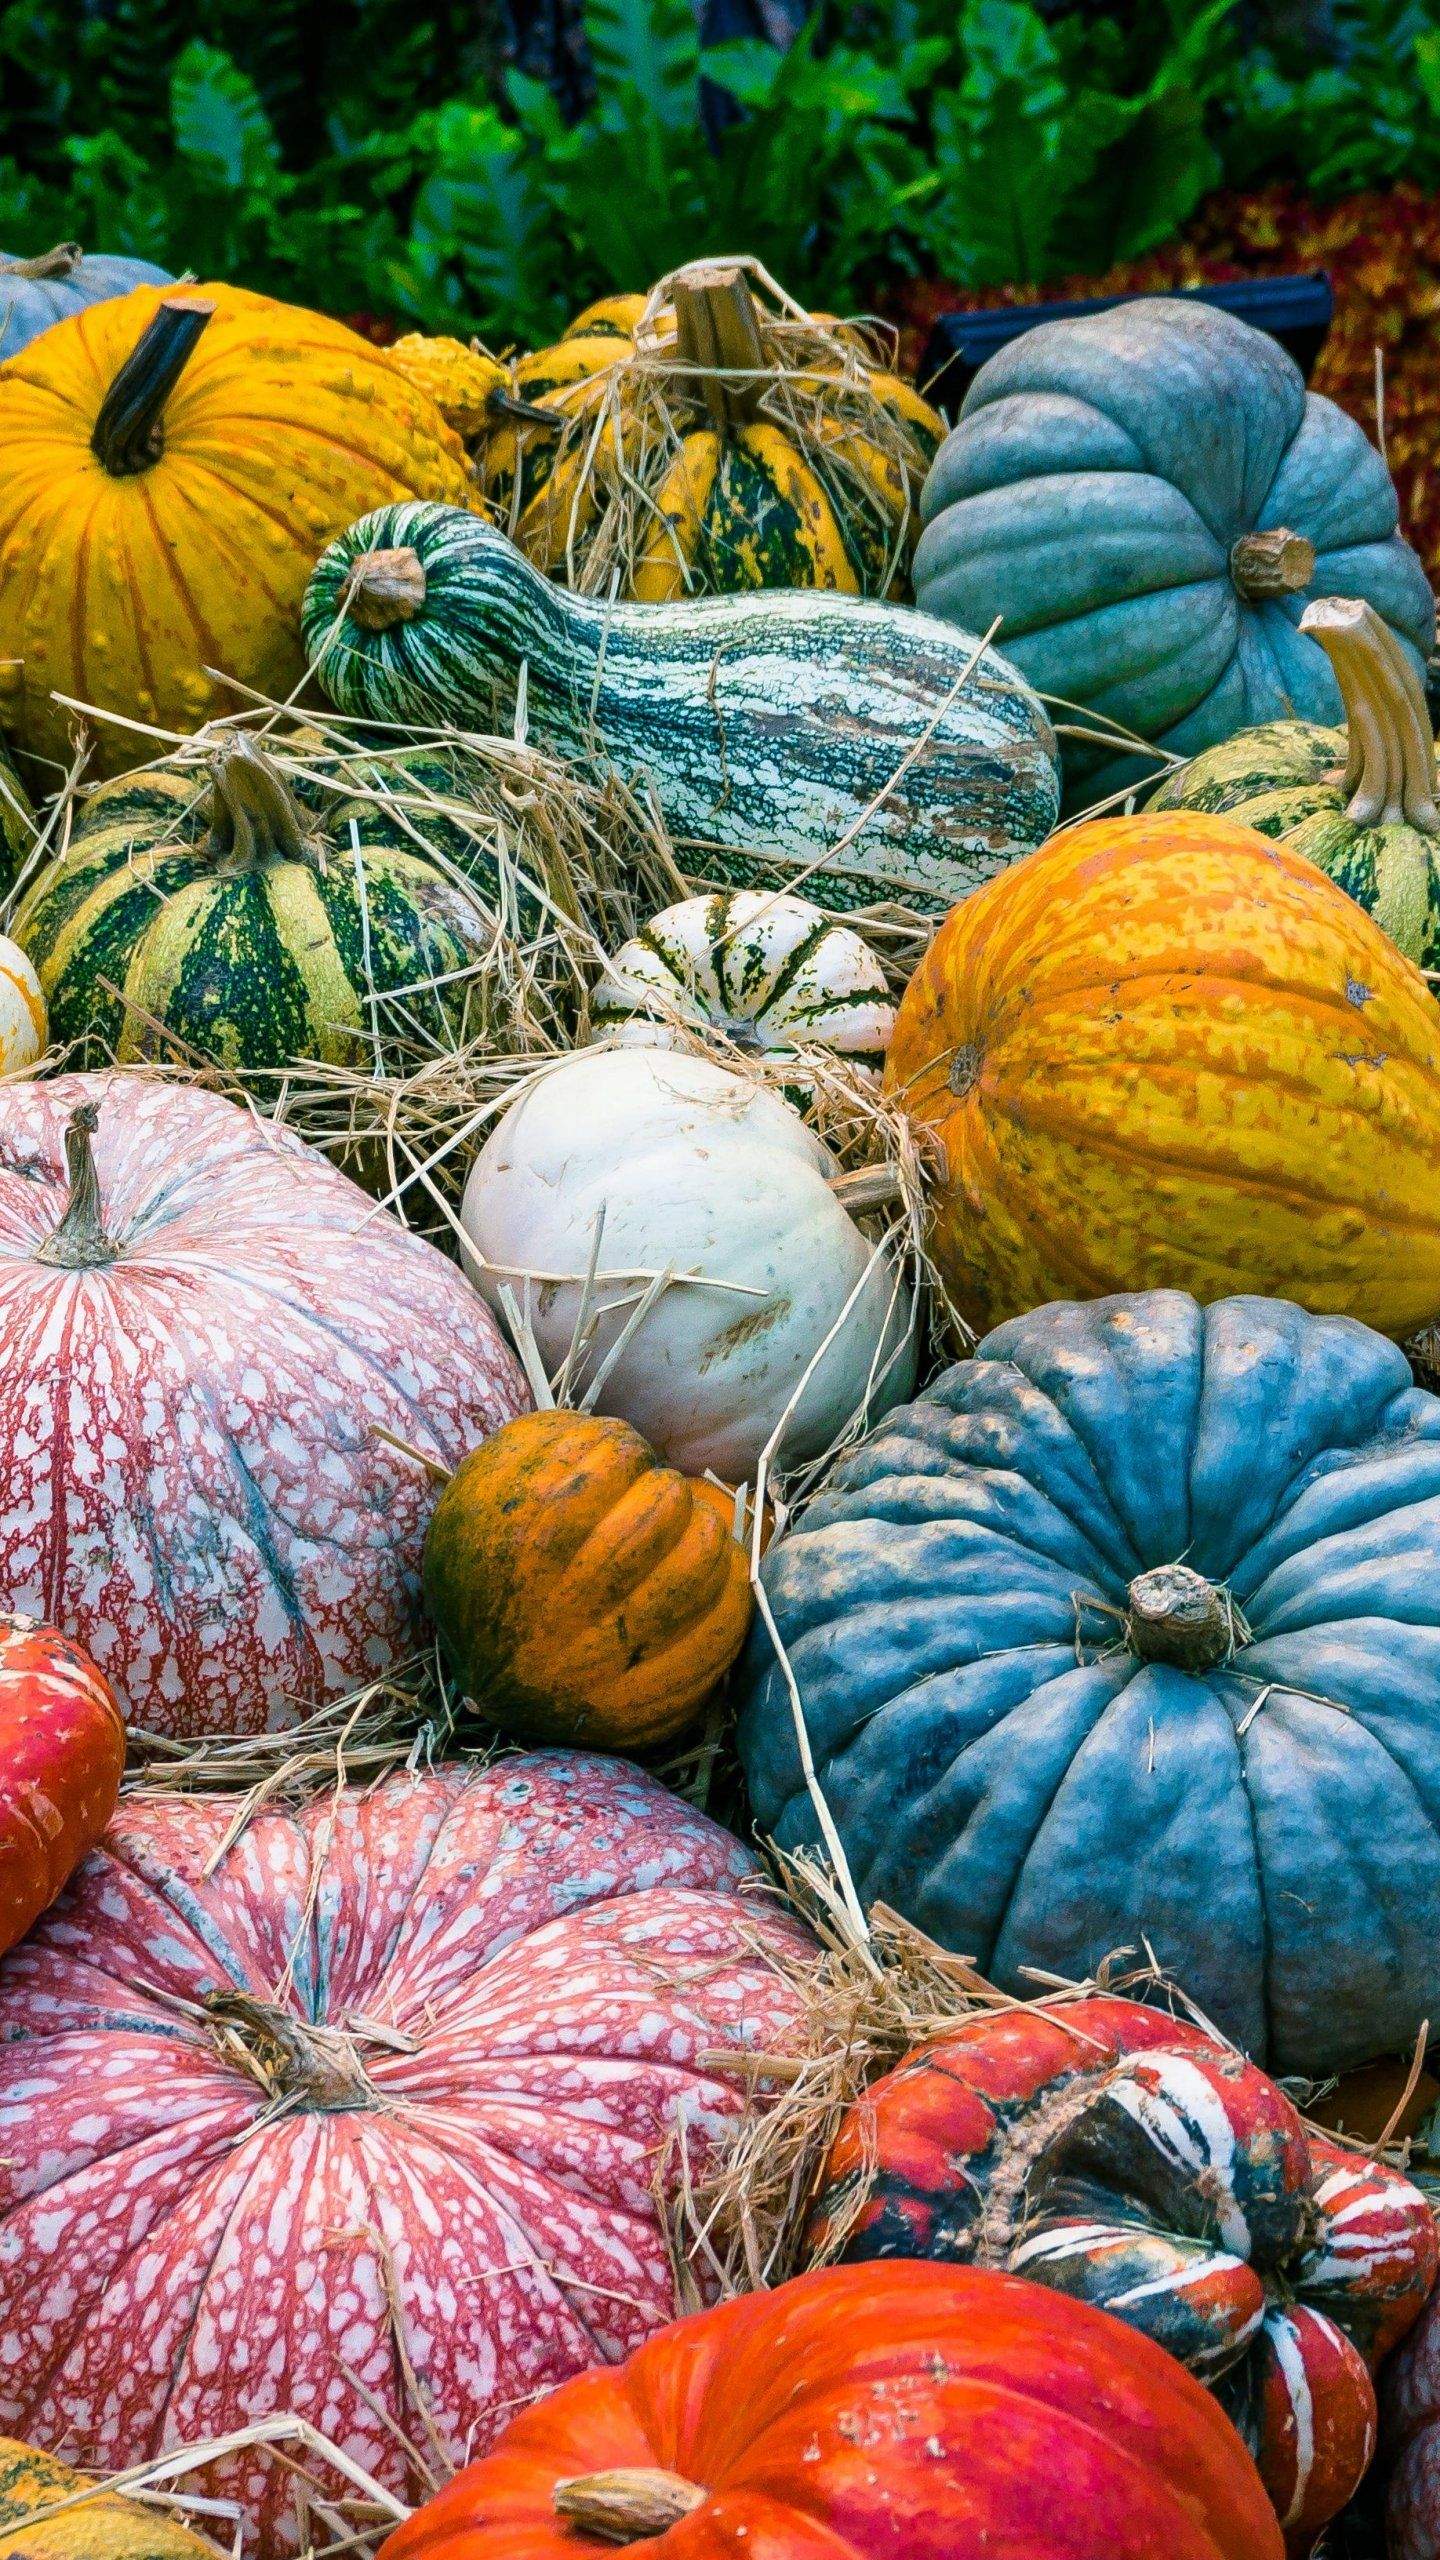 Colorful Pumpkins Wallpaper Iphone Android Desktop Backgrounds Pumpkin Wallpaper Iphone Wallpaper Fall Fall Wallpaper